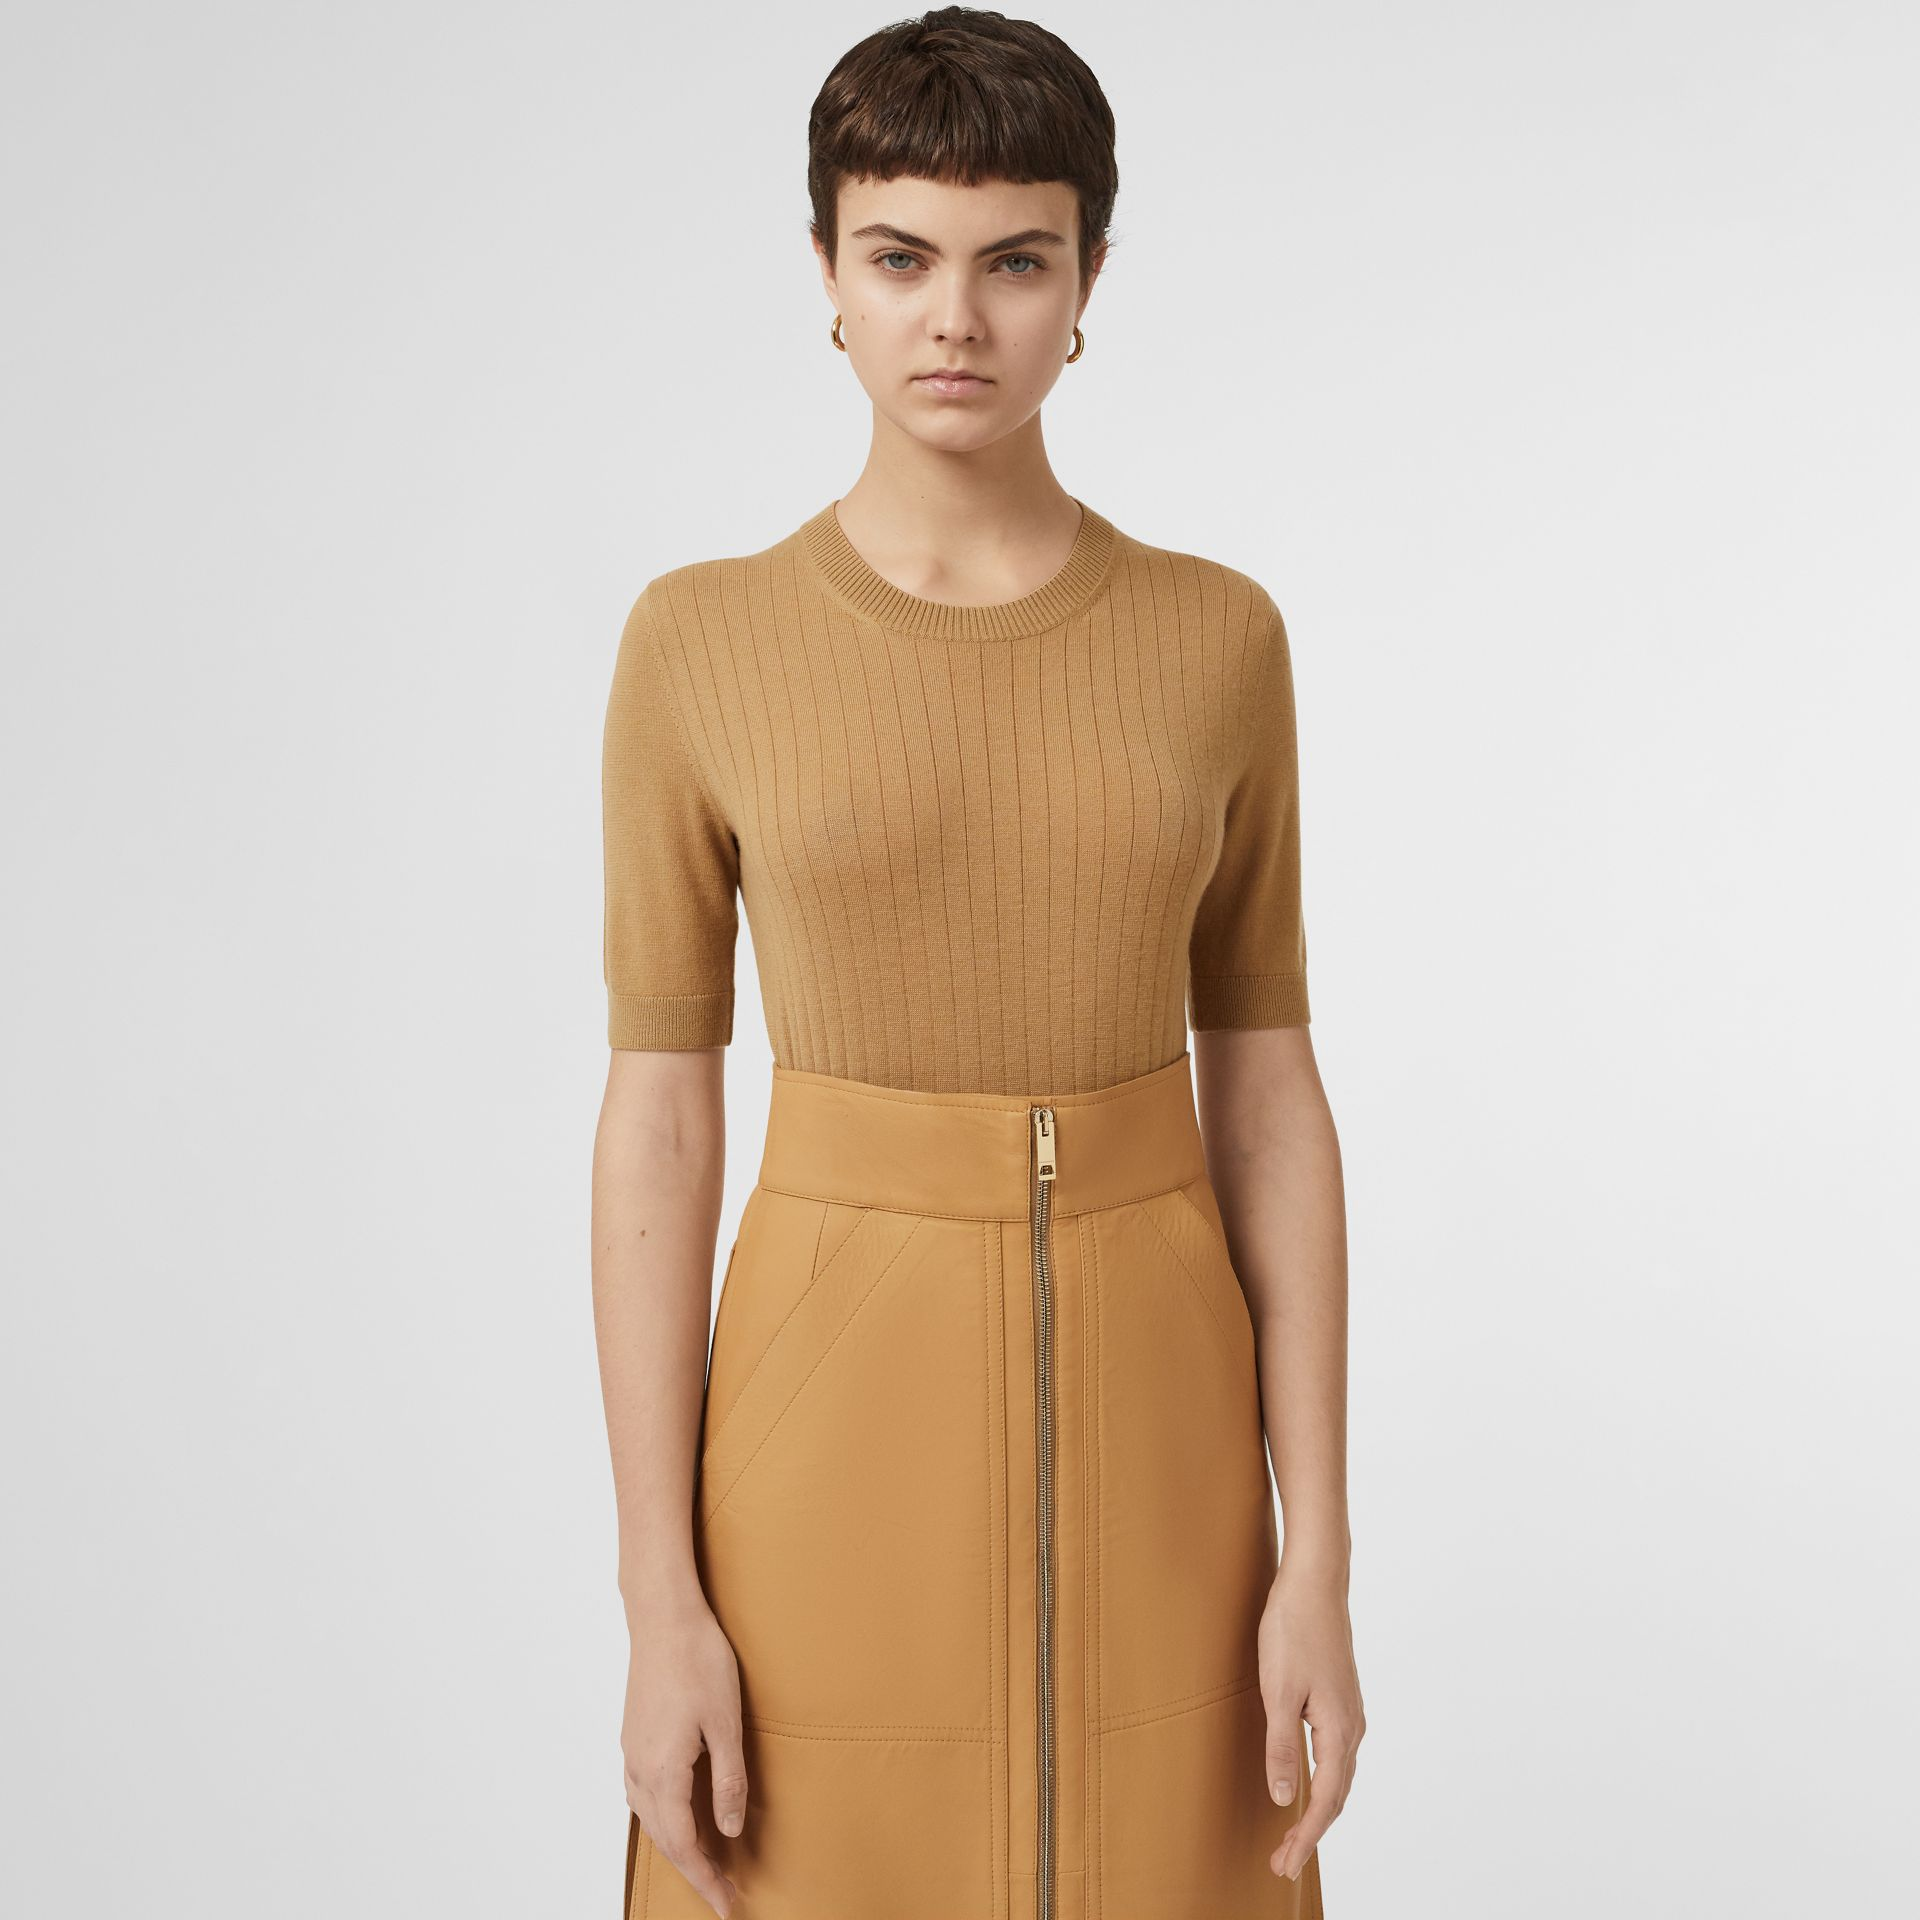 Short-sleeve Rib Knit Cashmere Sweater in Camel - Women | Burberry - gallery image 5